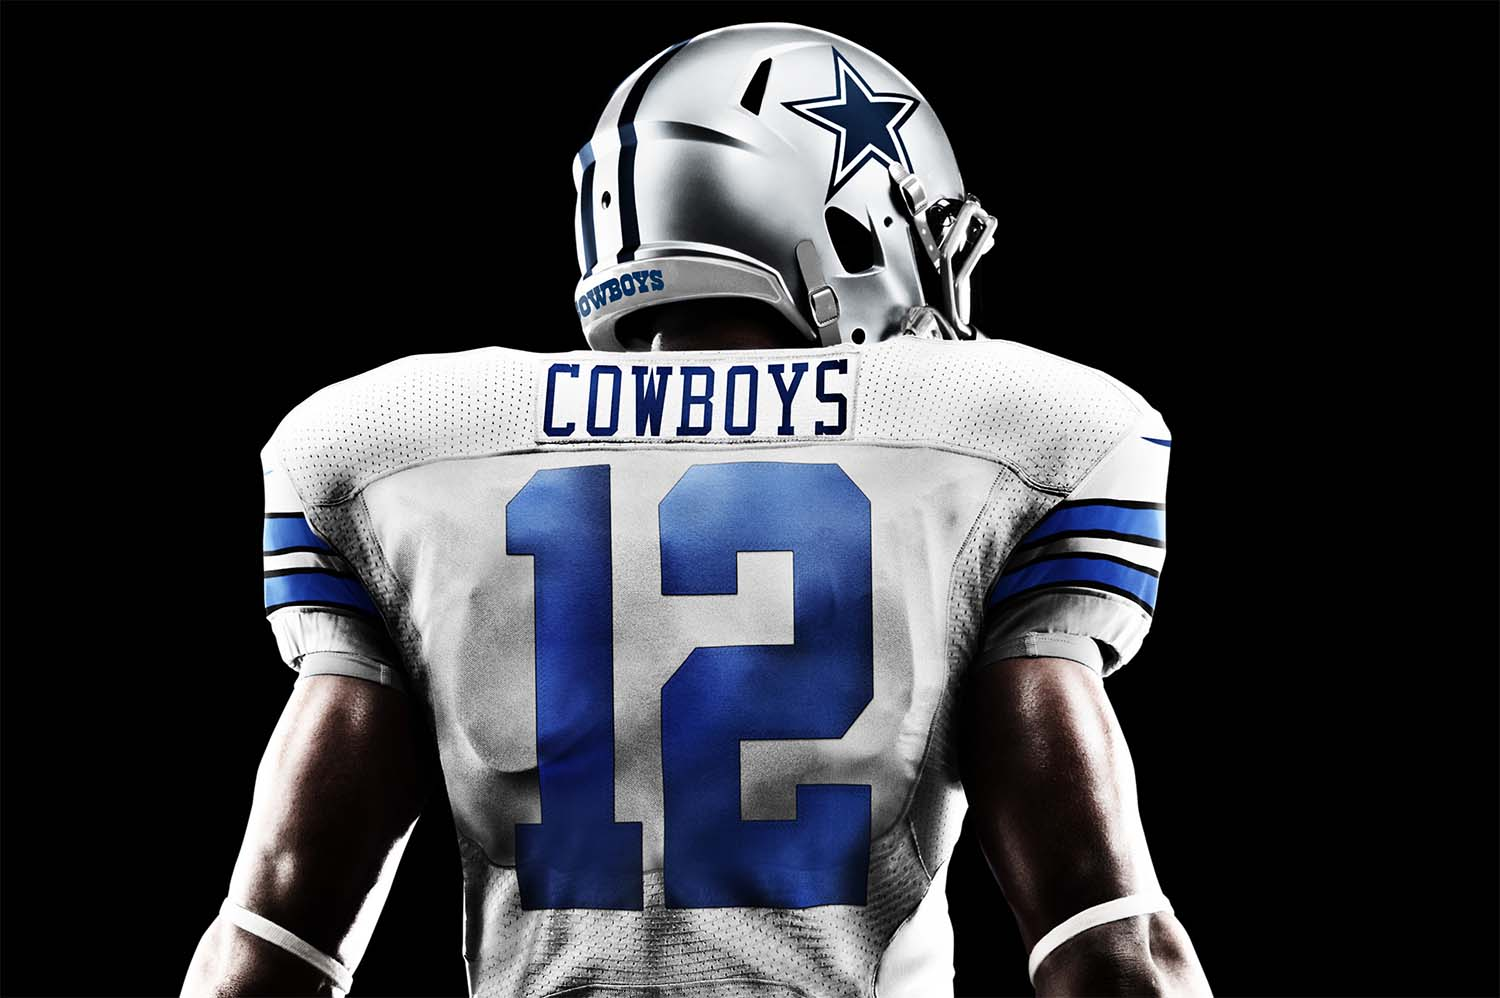 Dallas Cowboys Uniforms  THE BOYS ARE BACK